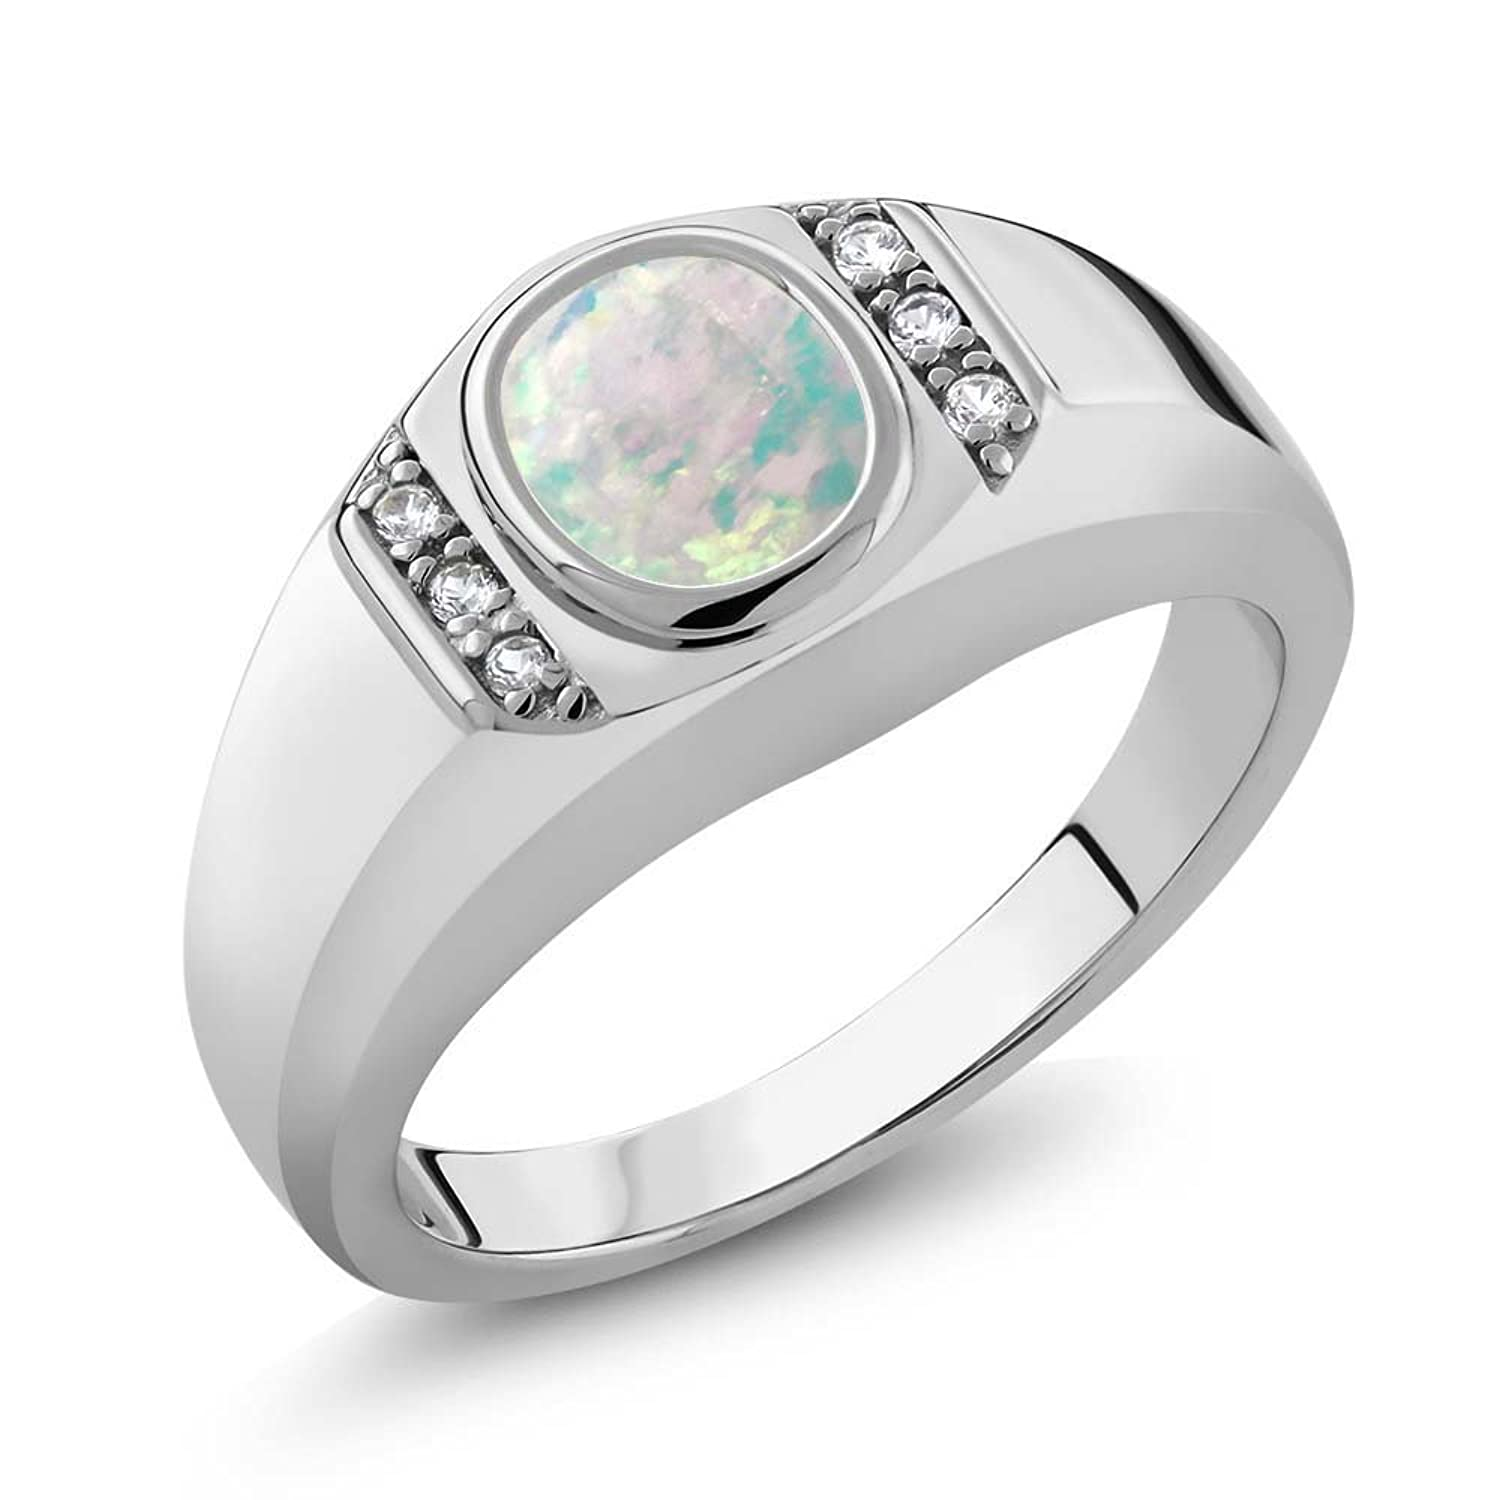 1.11 Ct Oval Cabochon White Simulated Opal White Created Sapphire 925 Sterling Silver Men's Ring